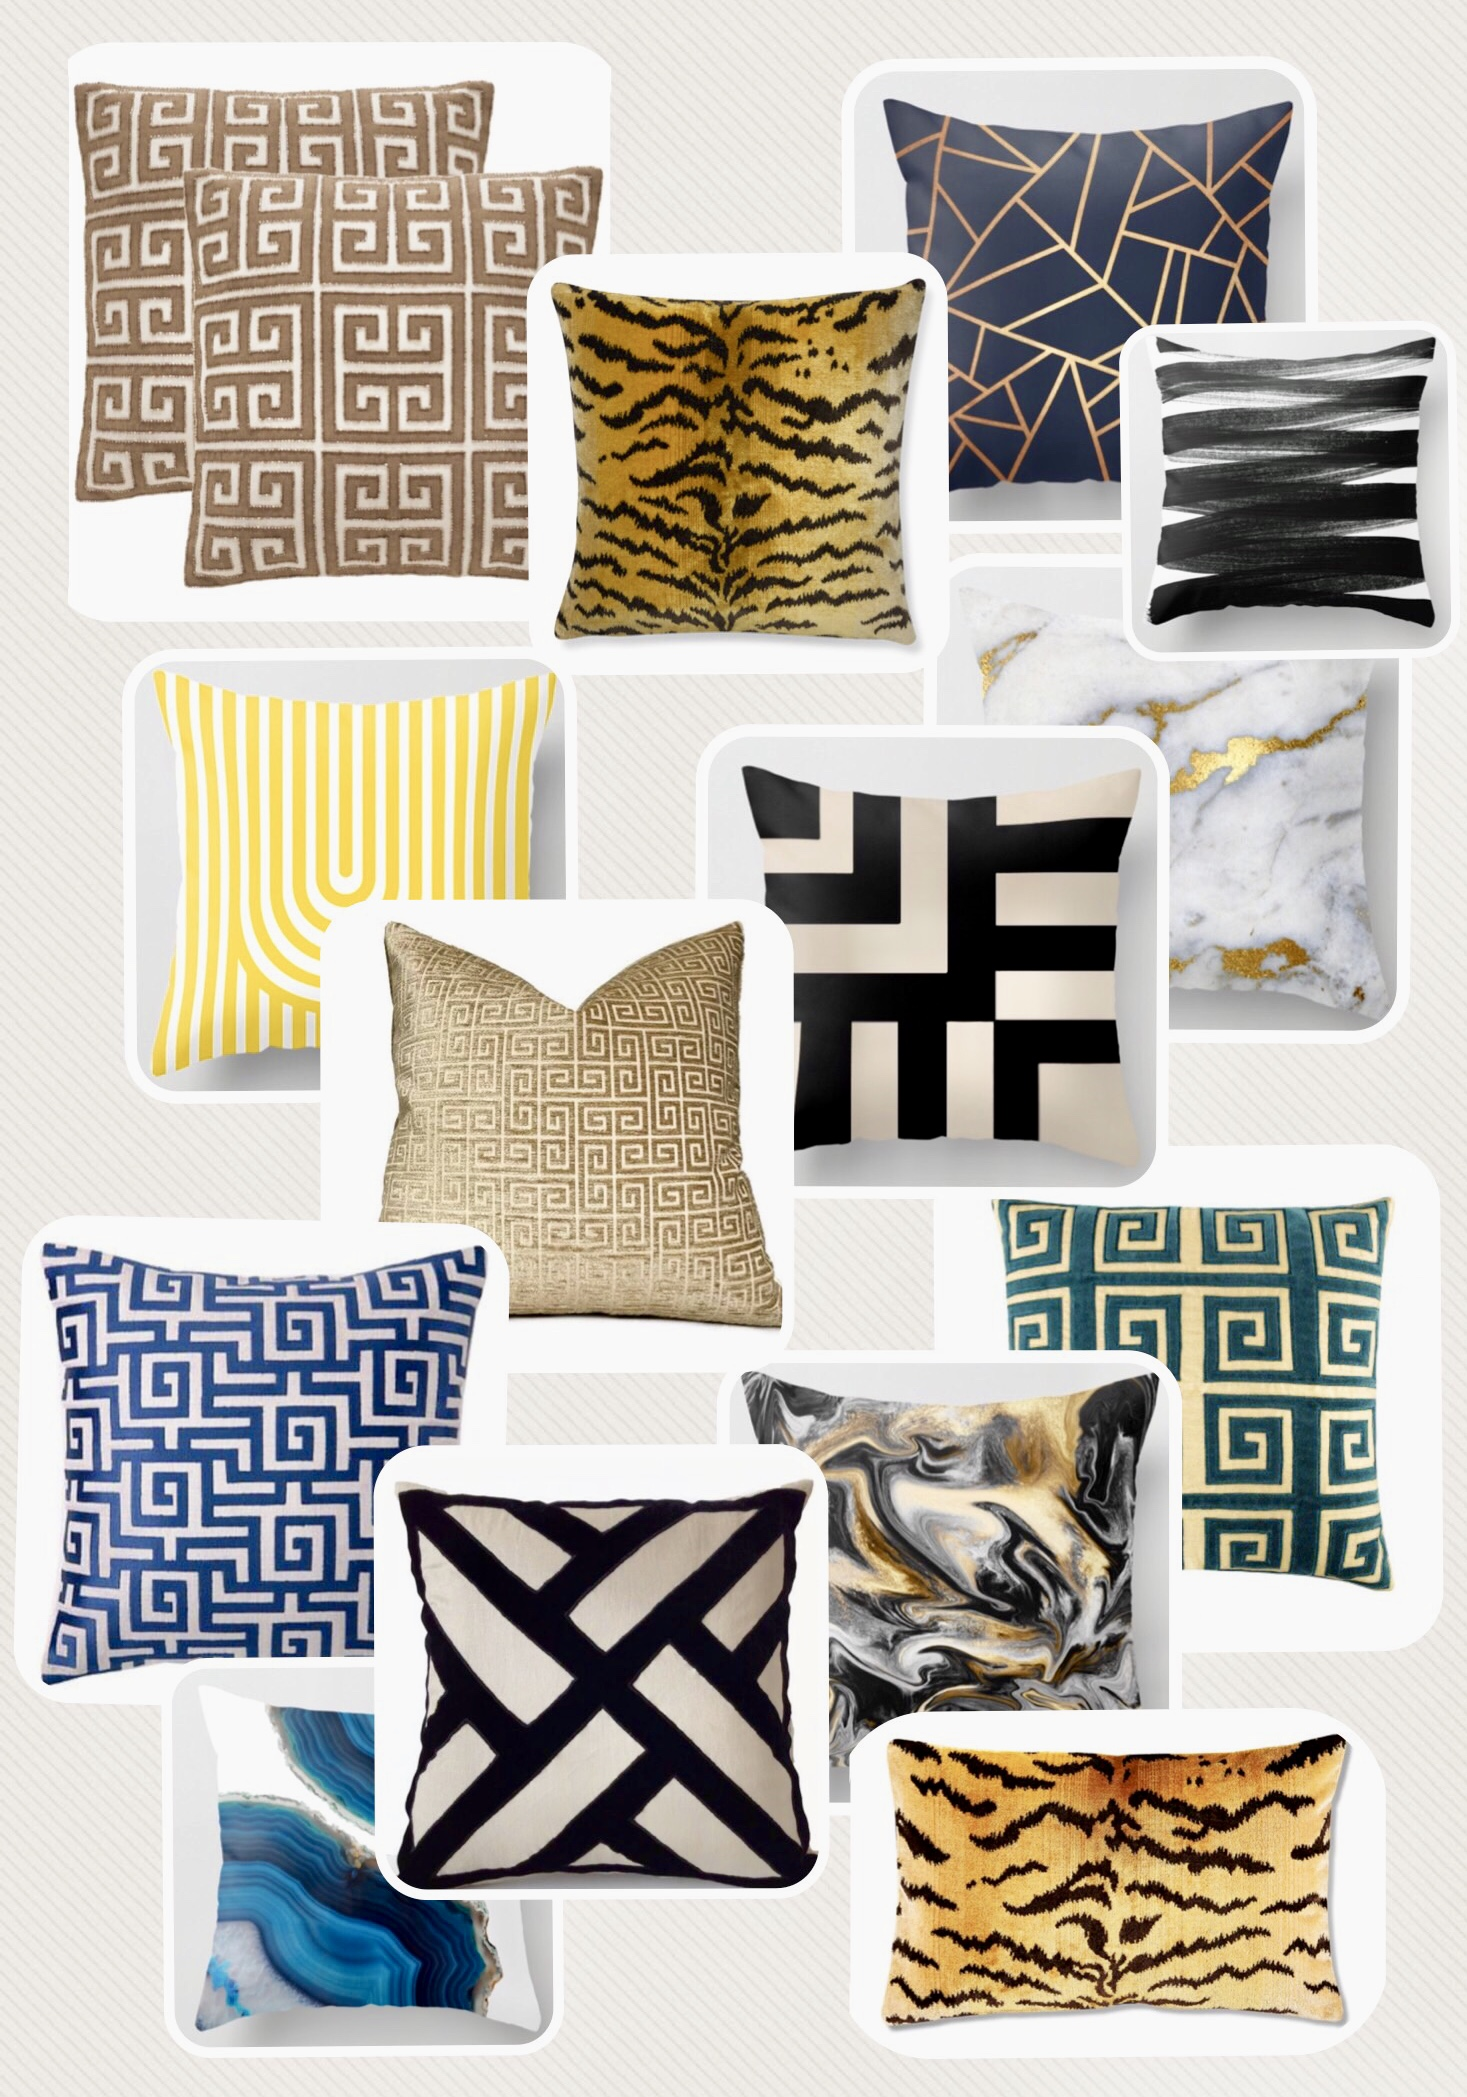 textured patterned colorful pillow choices The Rath Project